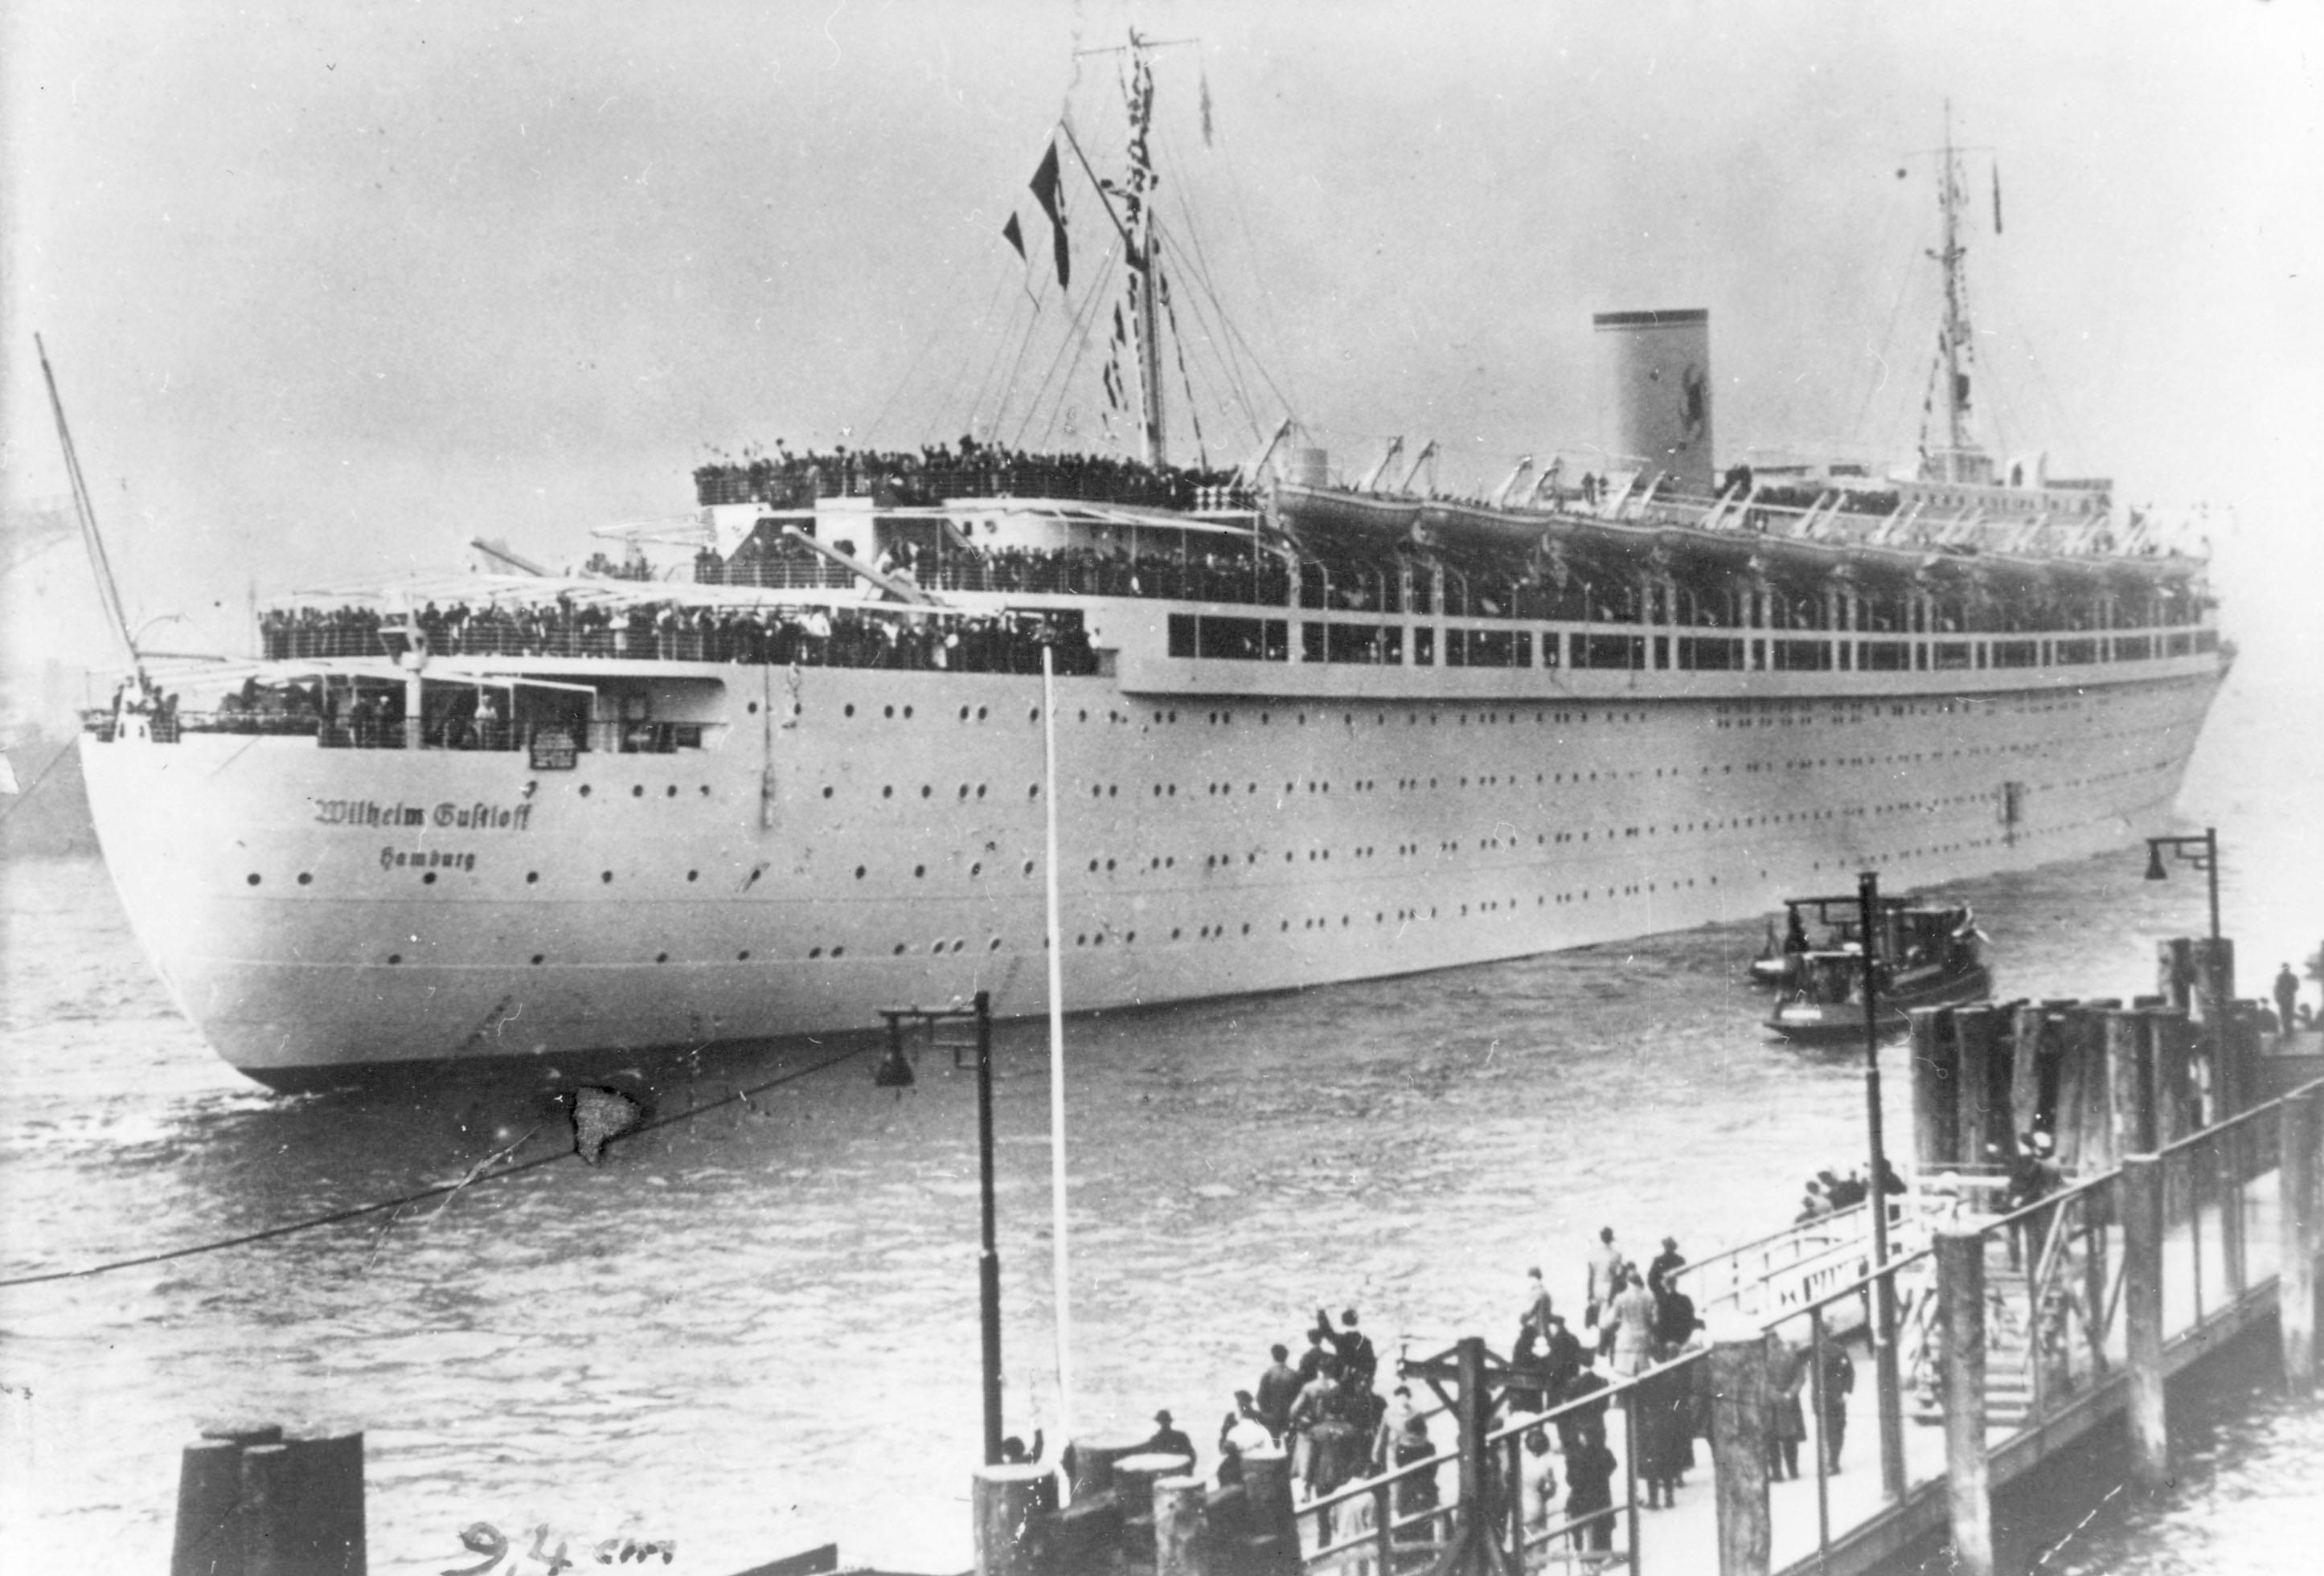 The Forgotten Maritime Tragedy That Was 6 Times Deadlier Than the Titanic